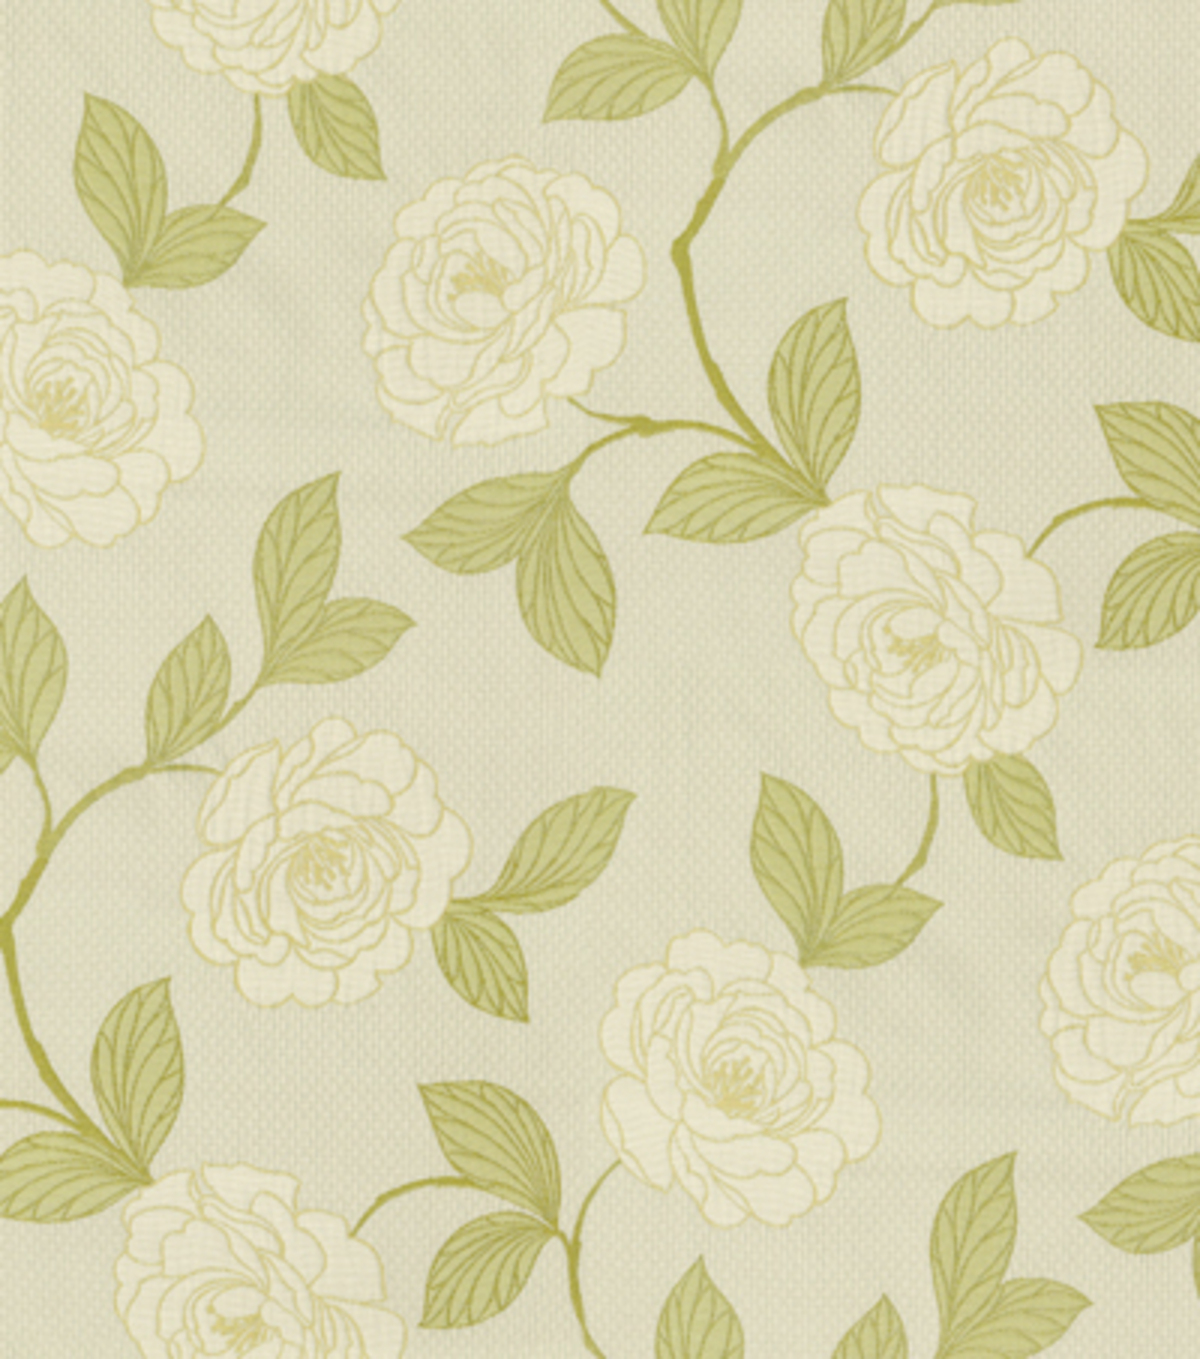 Home Decor 8\u0022x8\u0022 Fabric Swatch-Upholstery Fabric-Waverly Flirty Floral/Dill